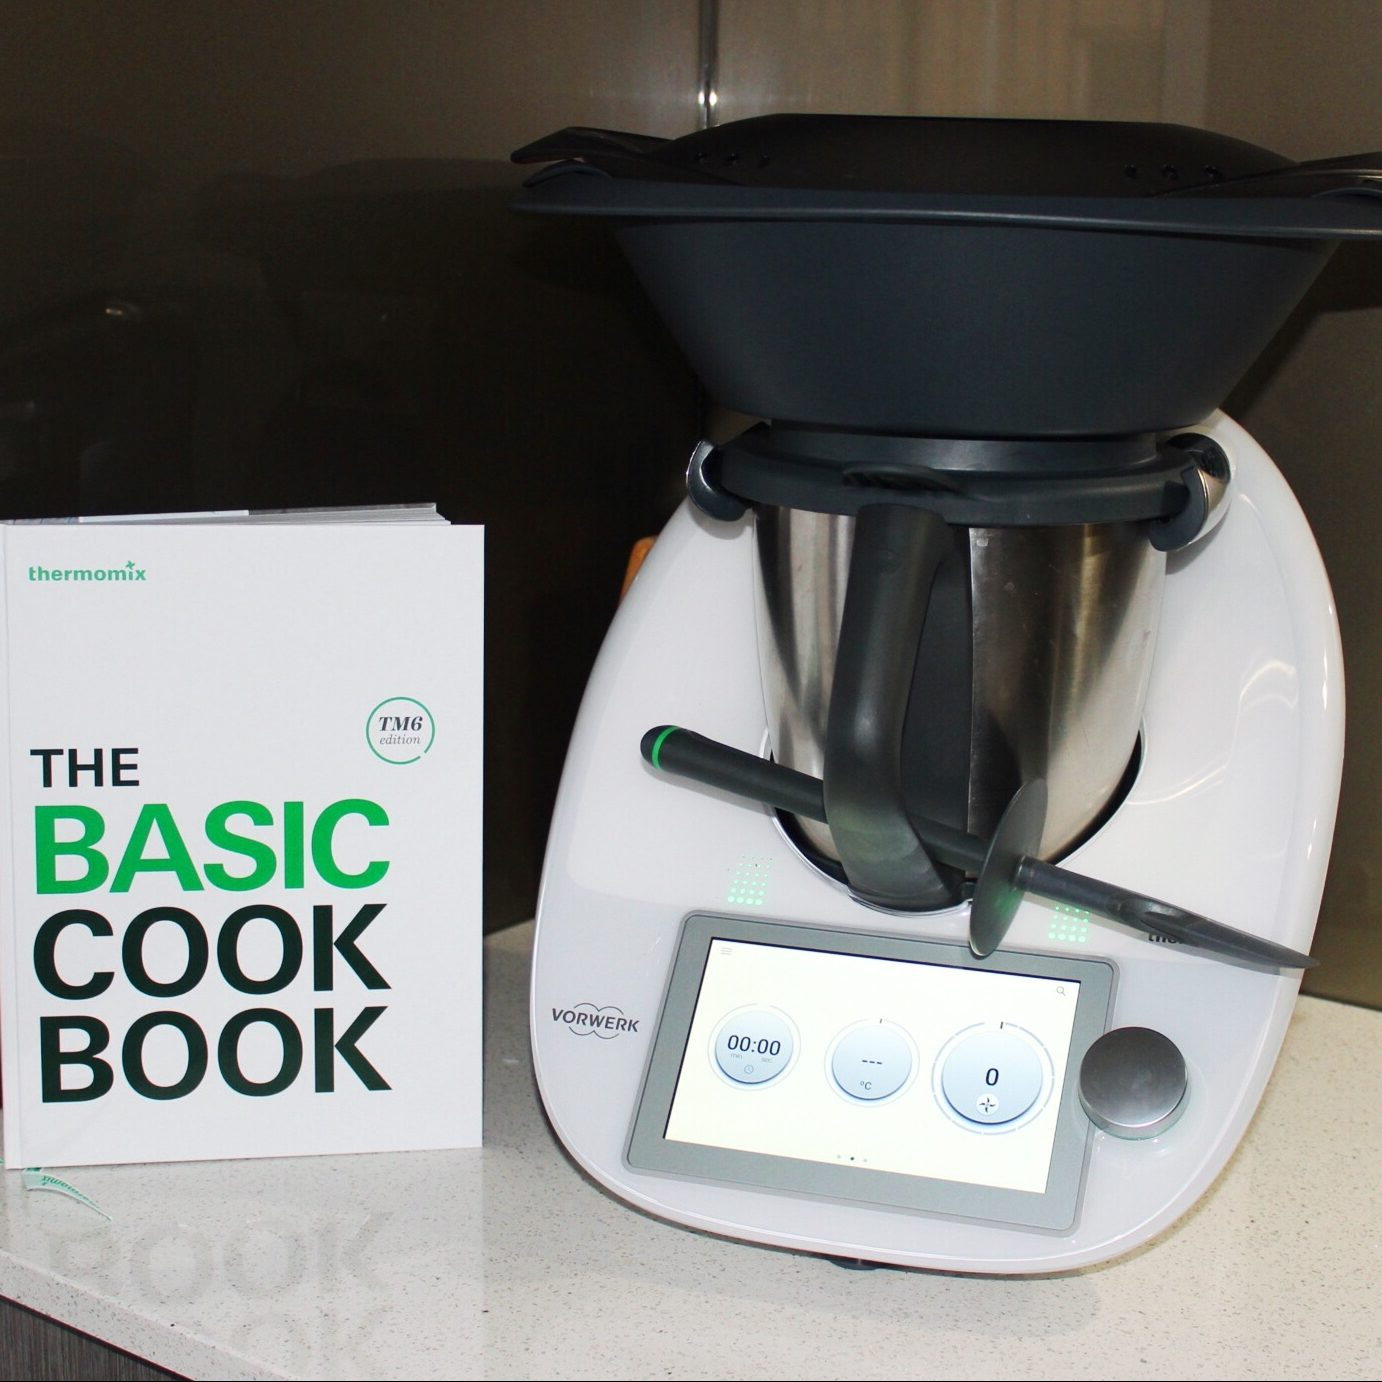 What is a Thermomix